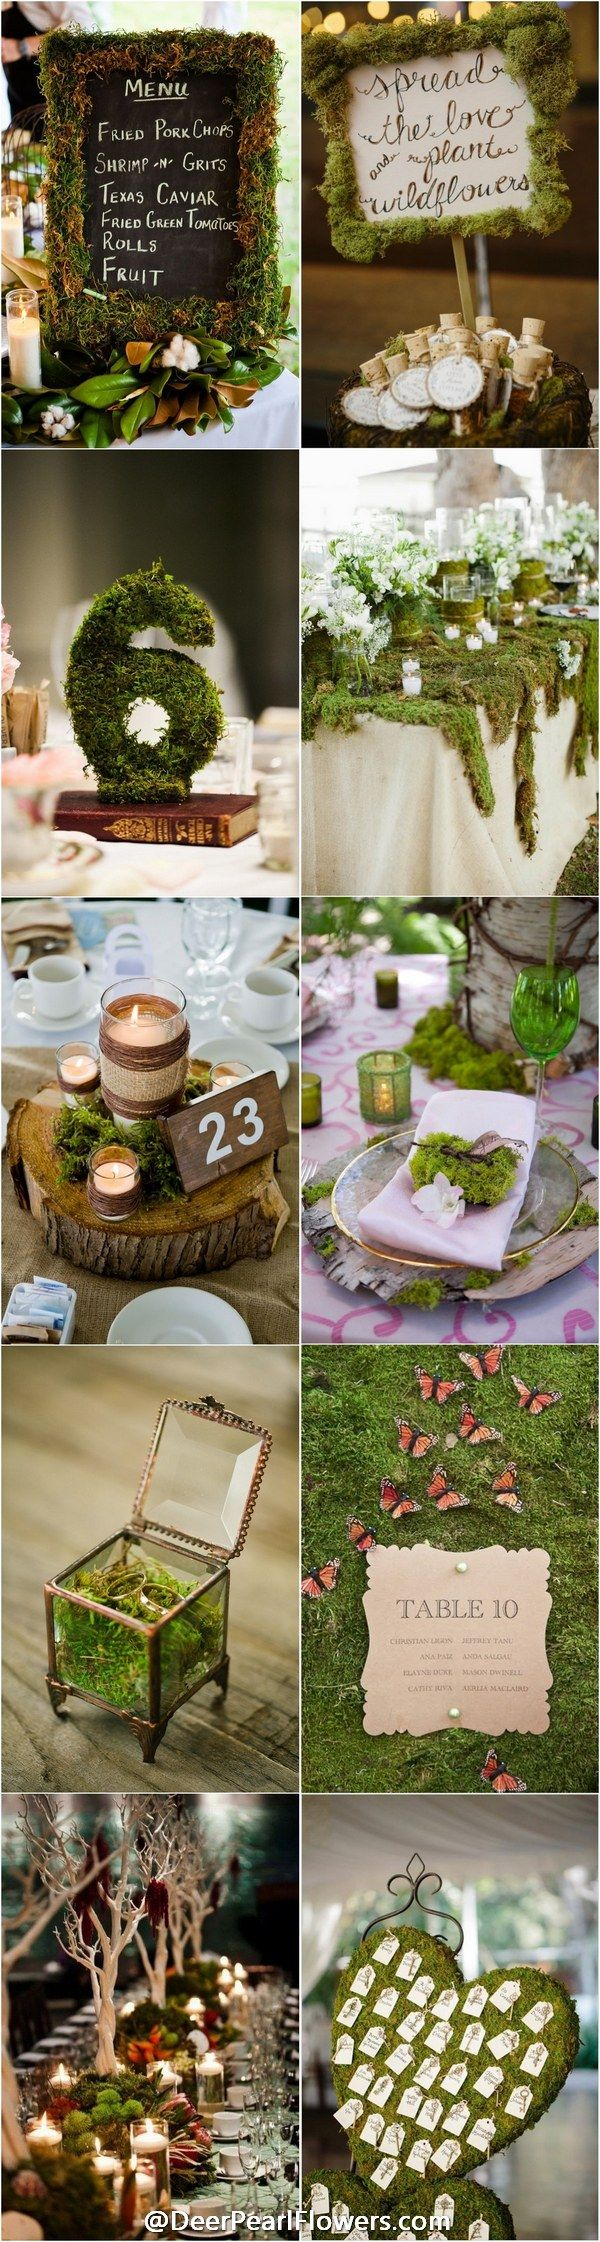 rustic greenery moss wedding ideas / http://www.deerpearlflowers.com/moss-decor-ideas-for-a-nature-wedding/